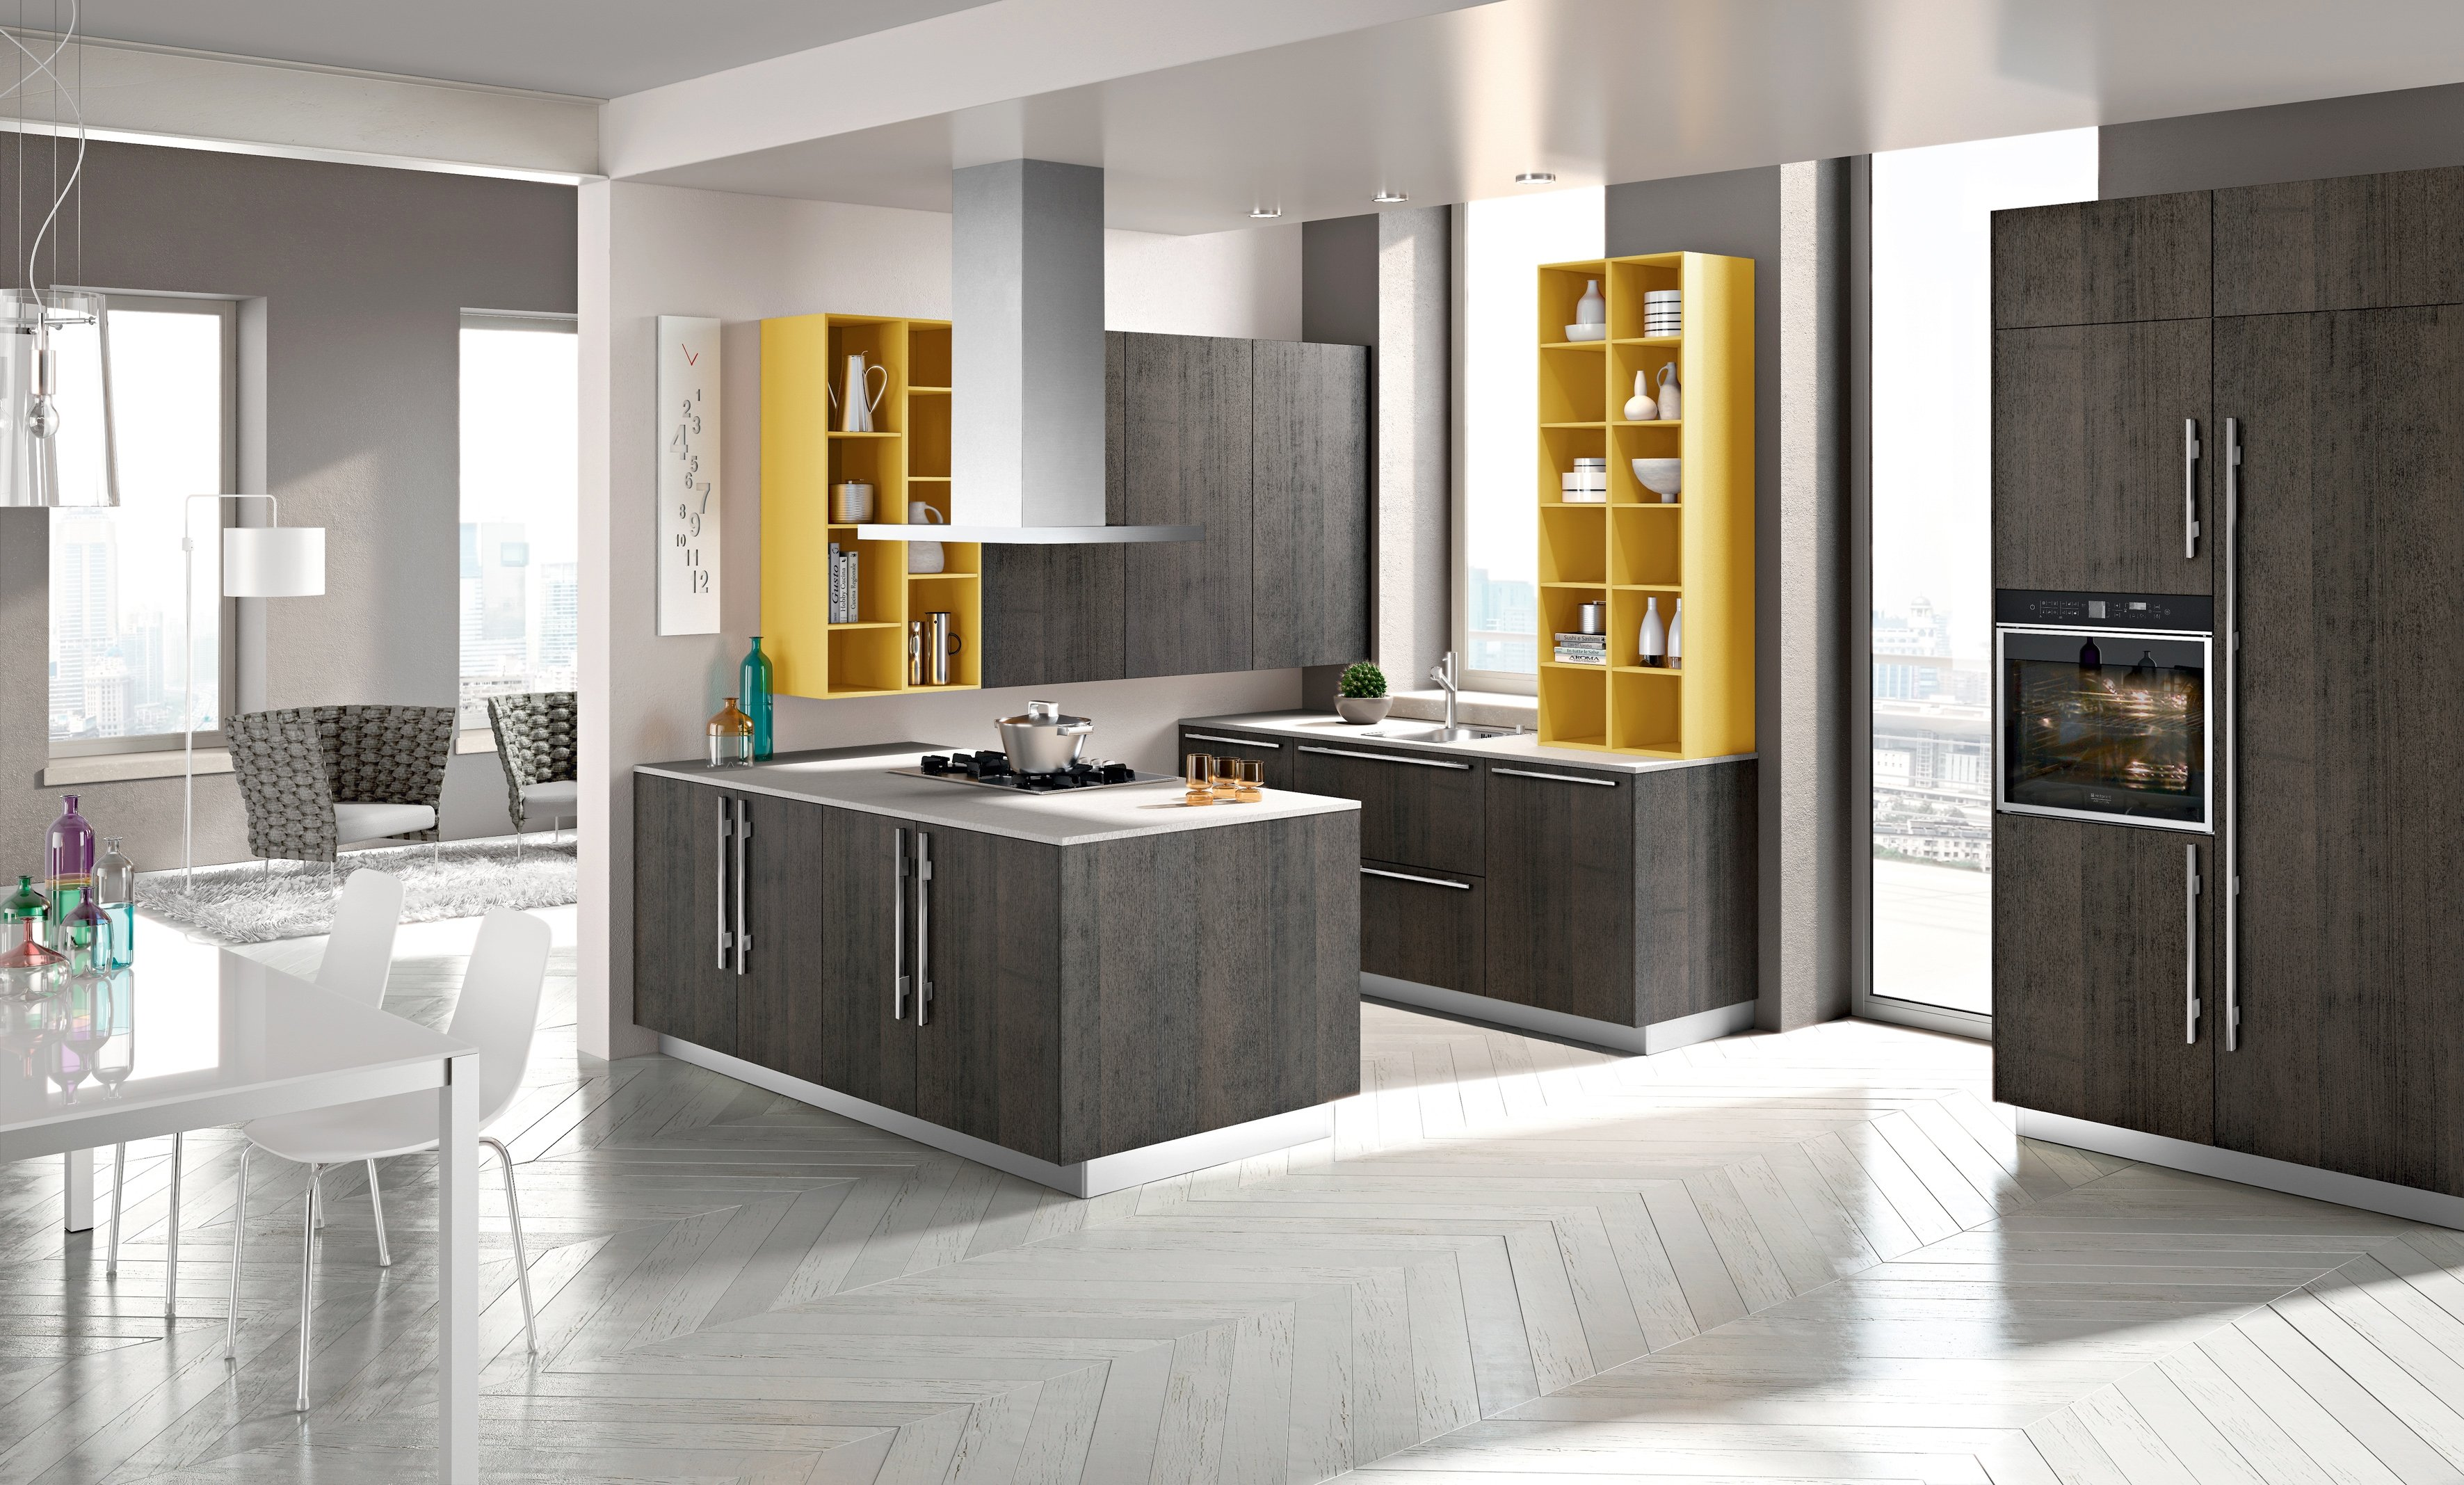 Cucine progetto pi preventivo cose di casa for New kitchen designs 2015